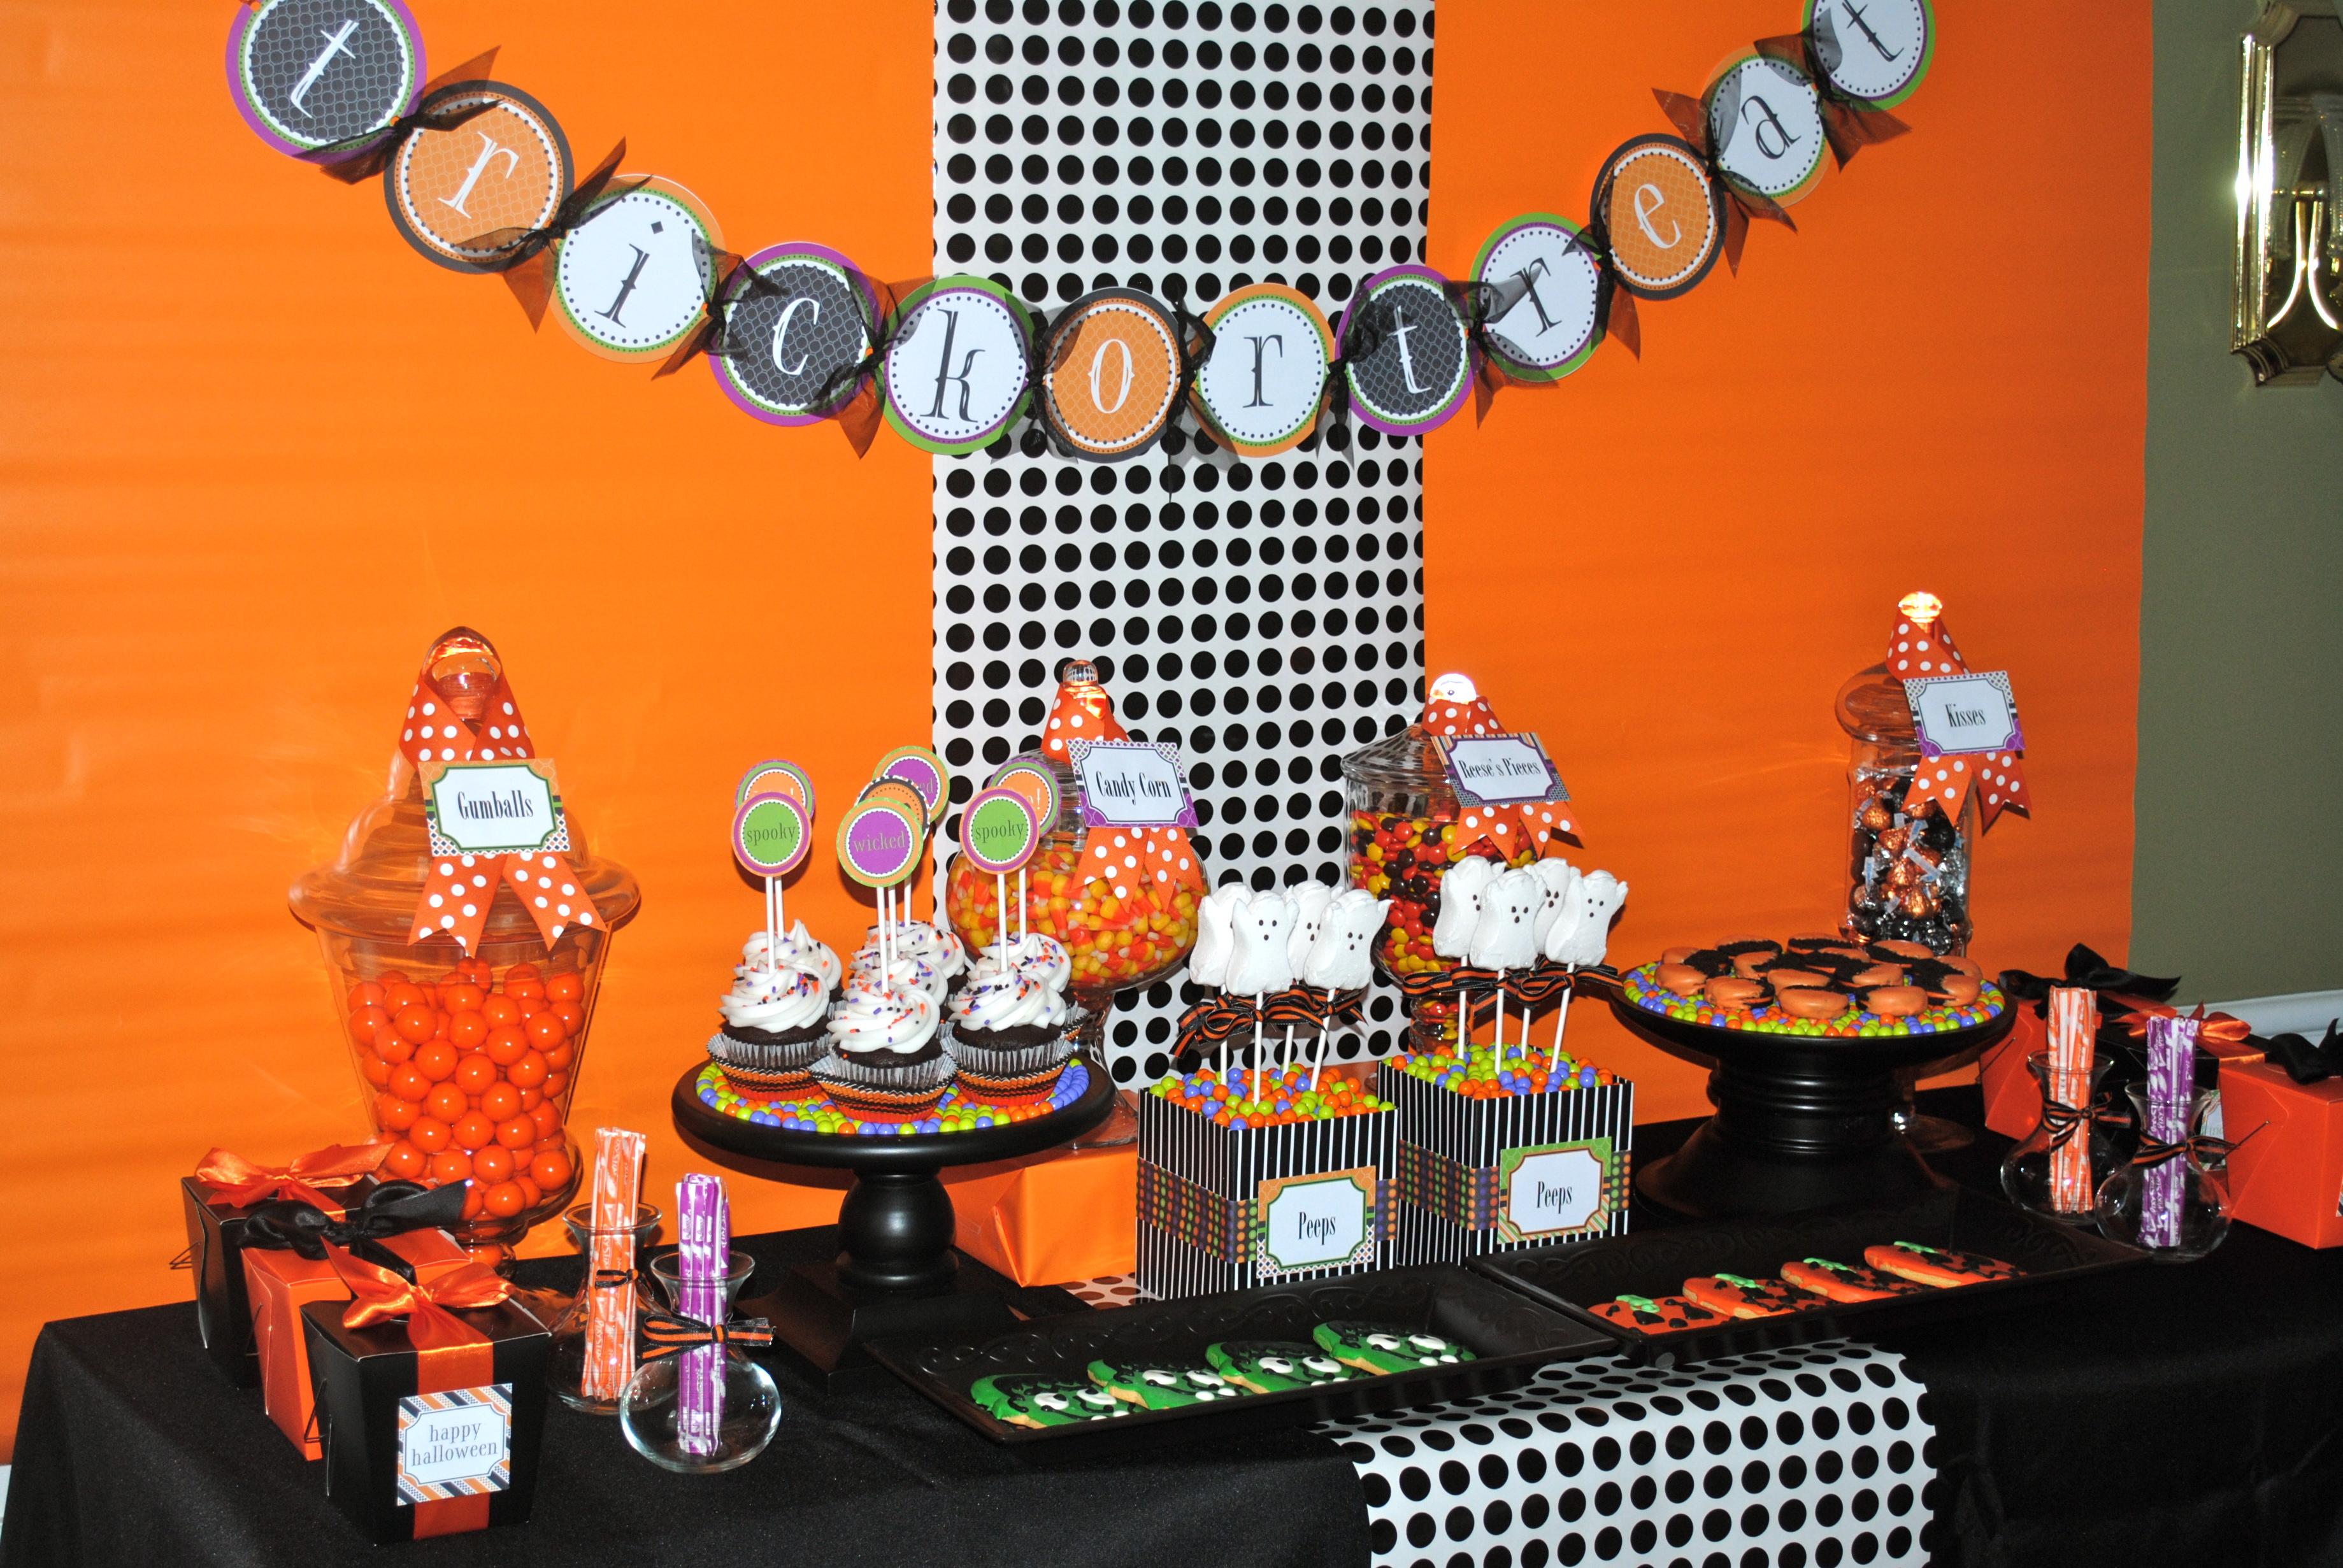 My Parties: Sweet (Not Spooky) Halloween Party - Part 1